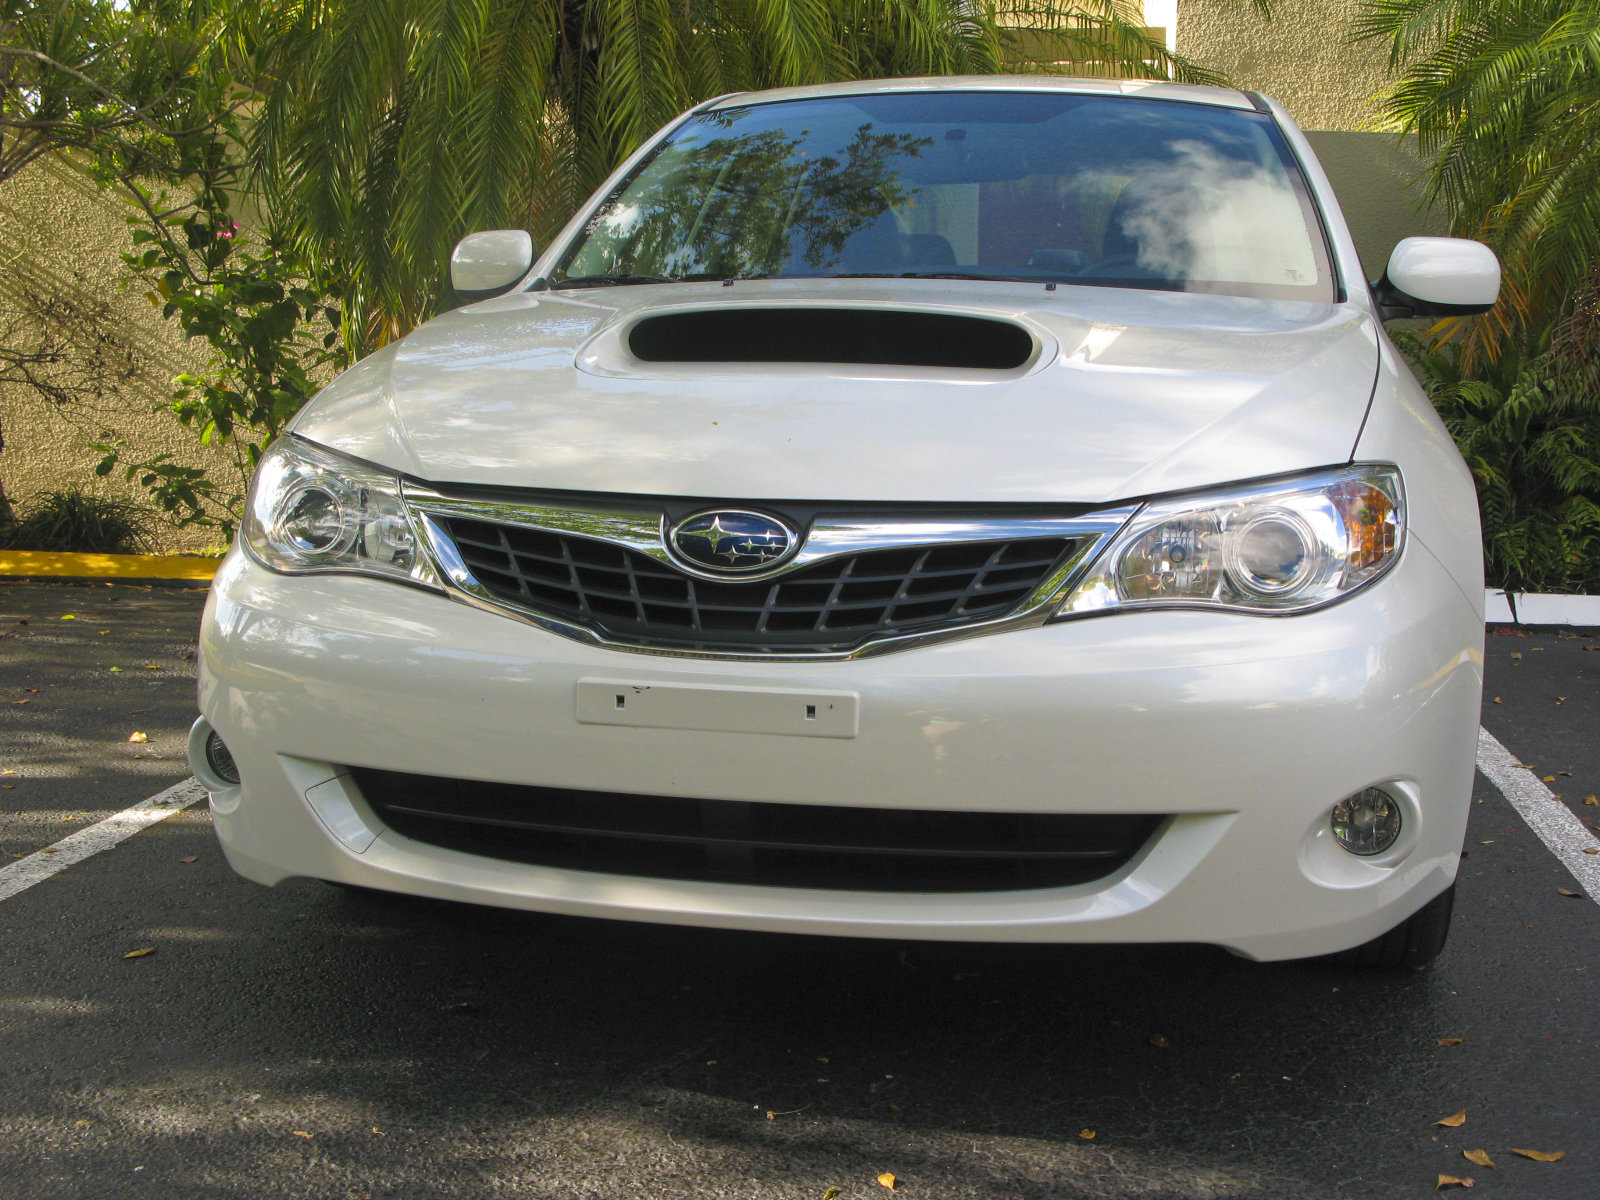 2009 subaru impreza gt picture 303377 car review top speed. Black Bedroom Furniture Sets. Home Design Ideas